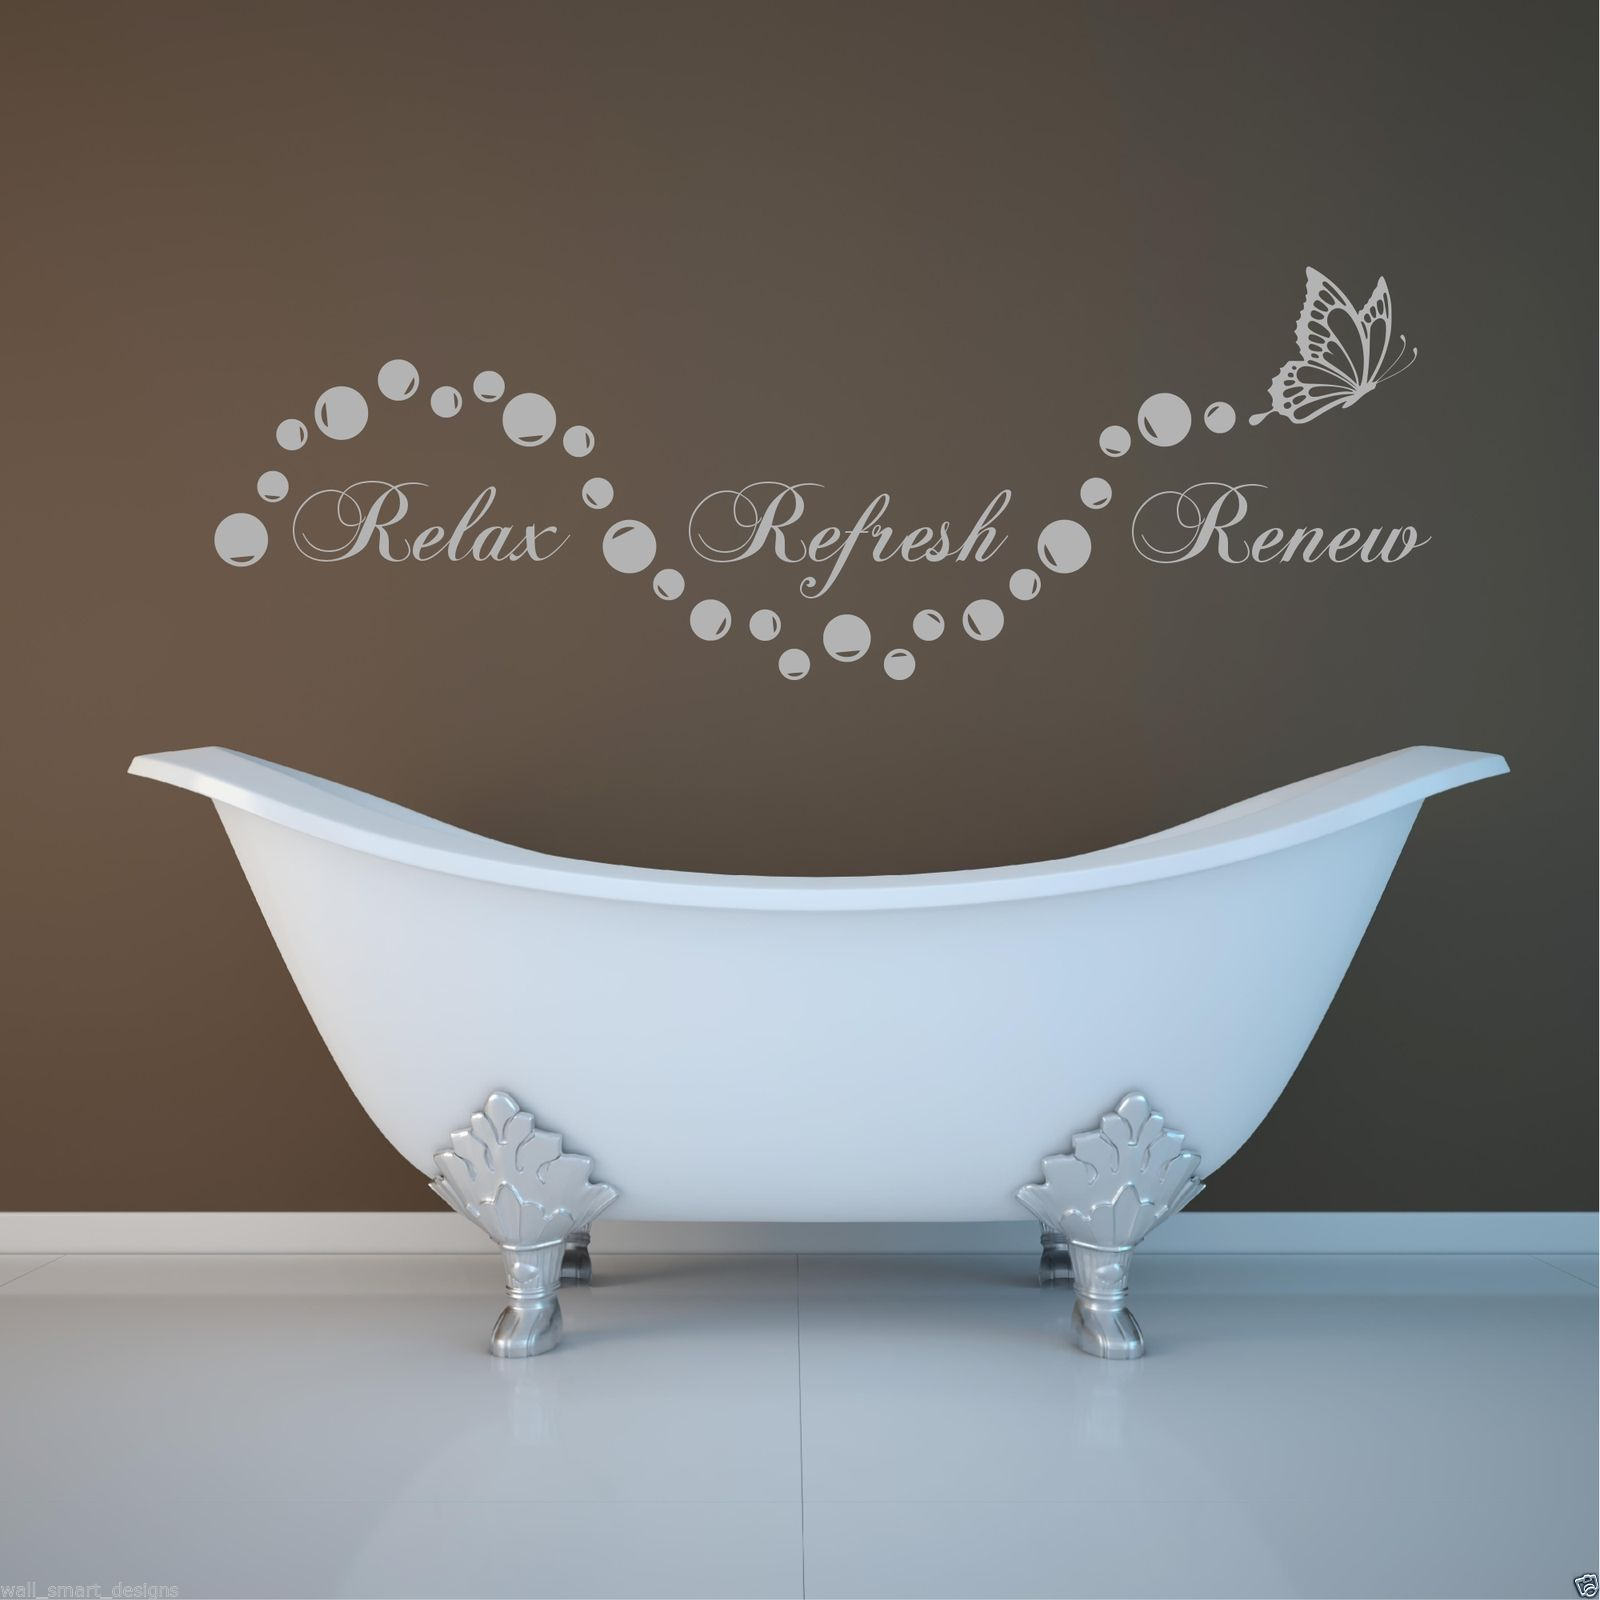 Relax bathroom bubbles en suite wall art sticker quote for Bathroom wall decor quotes